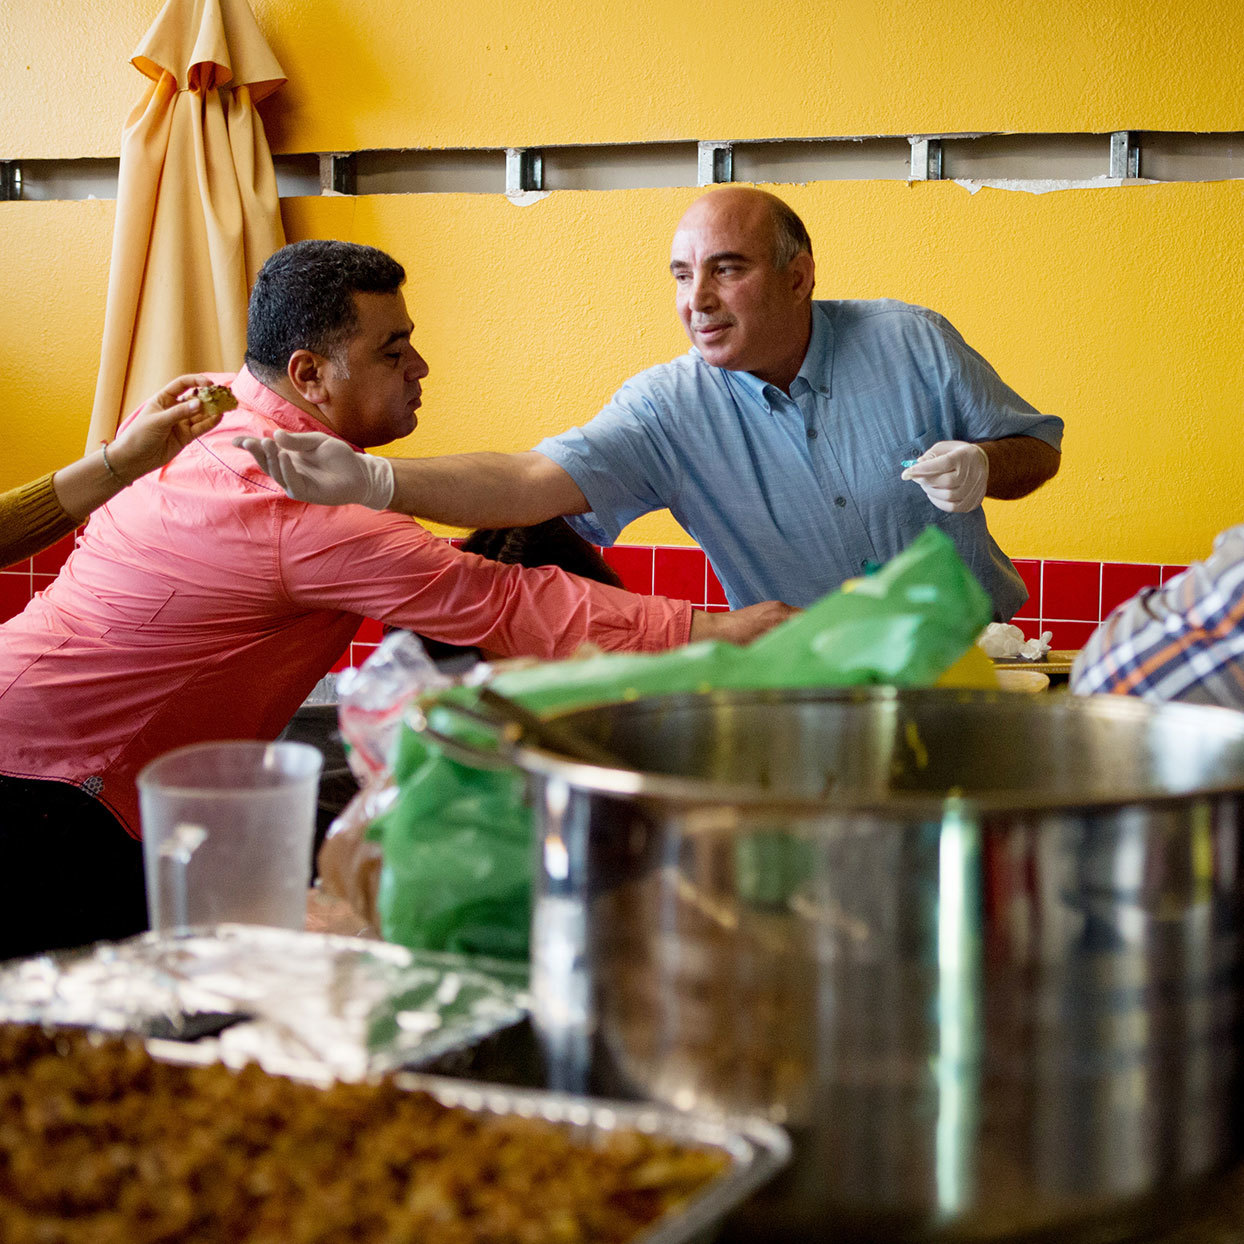 ahmed zarour serving syrian food